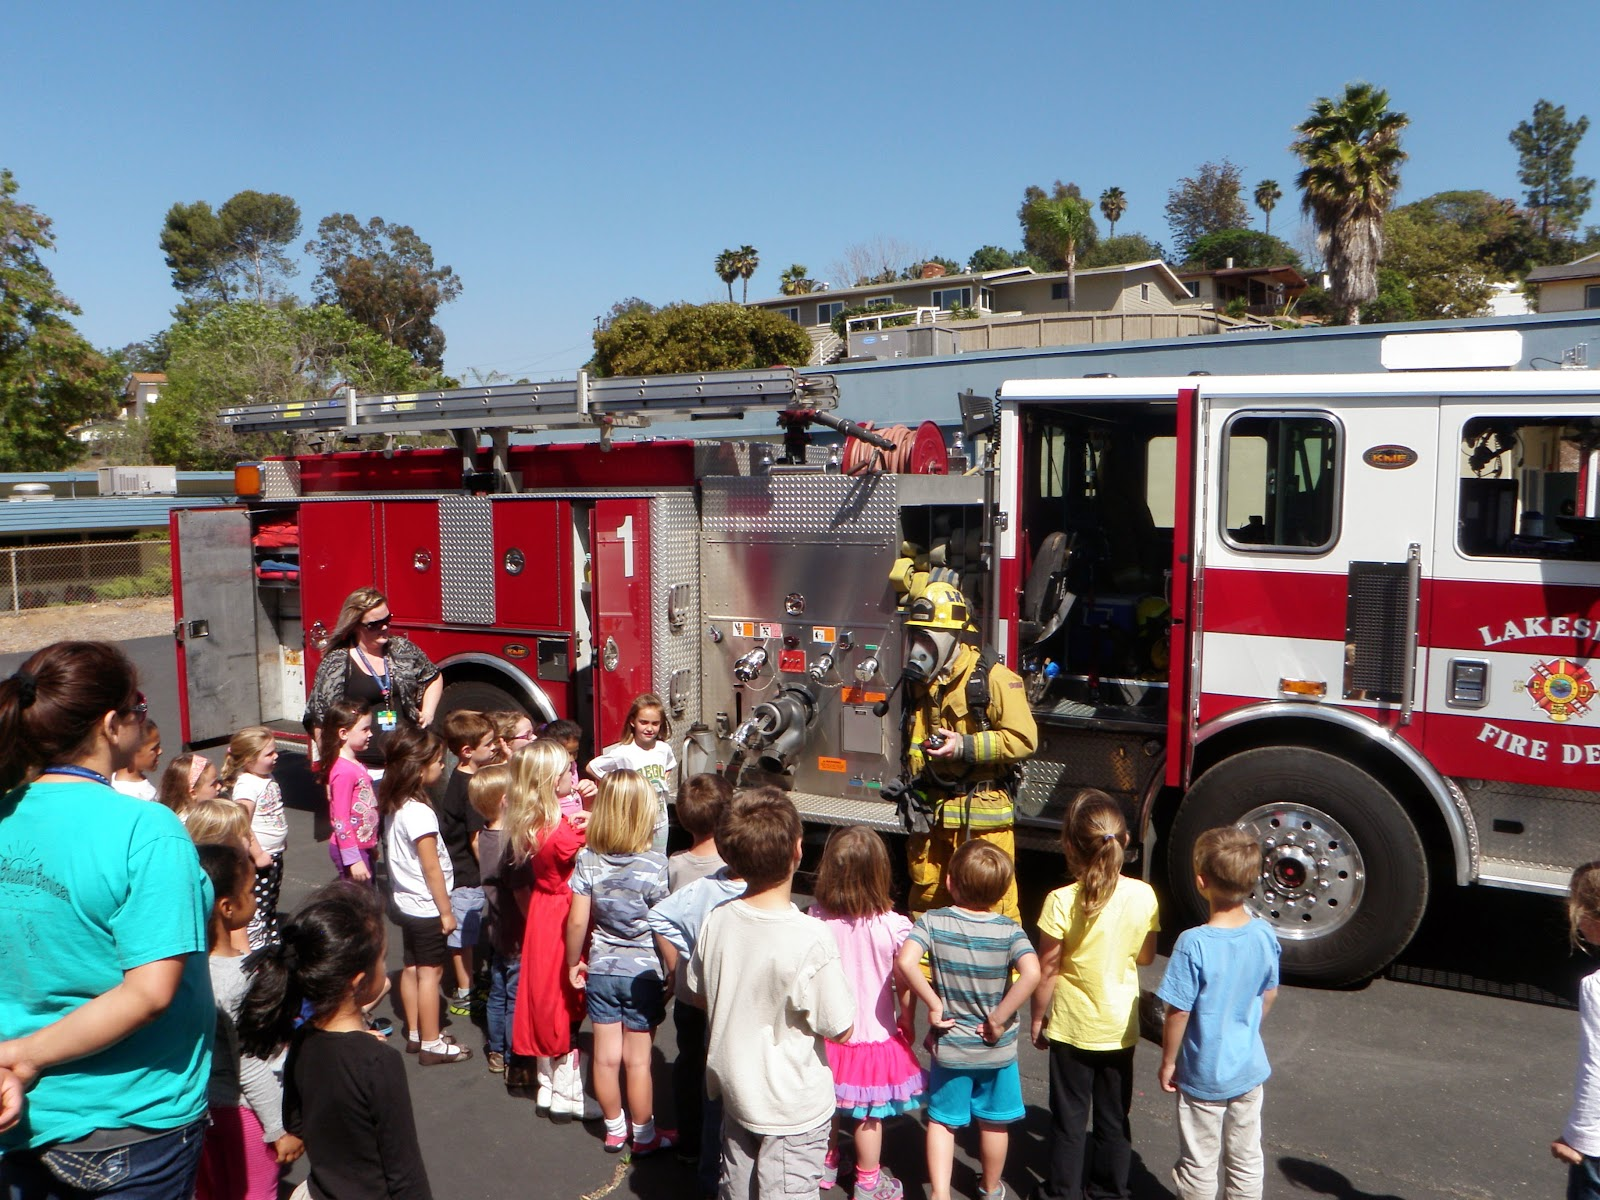 Lakeside Fire District Engine One Visits Winter Gardens Elementary School